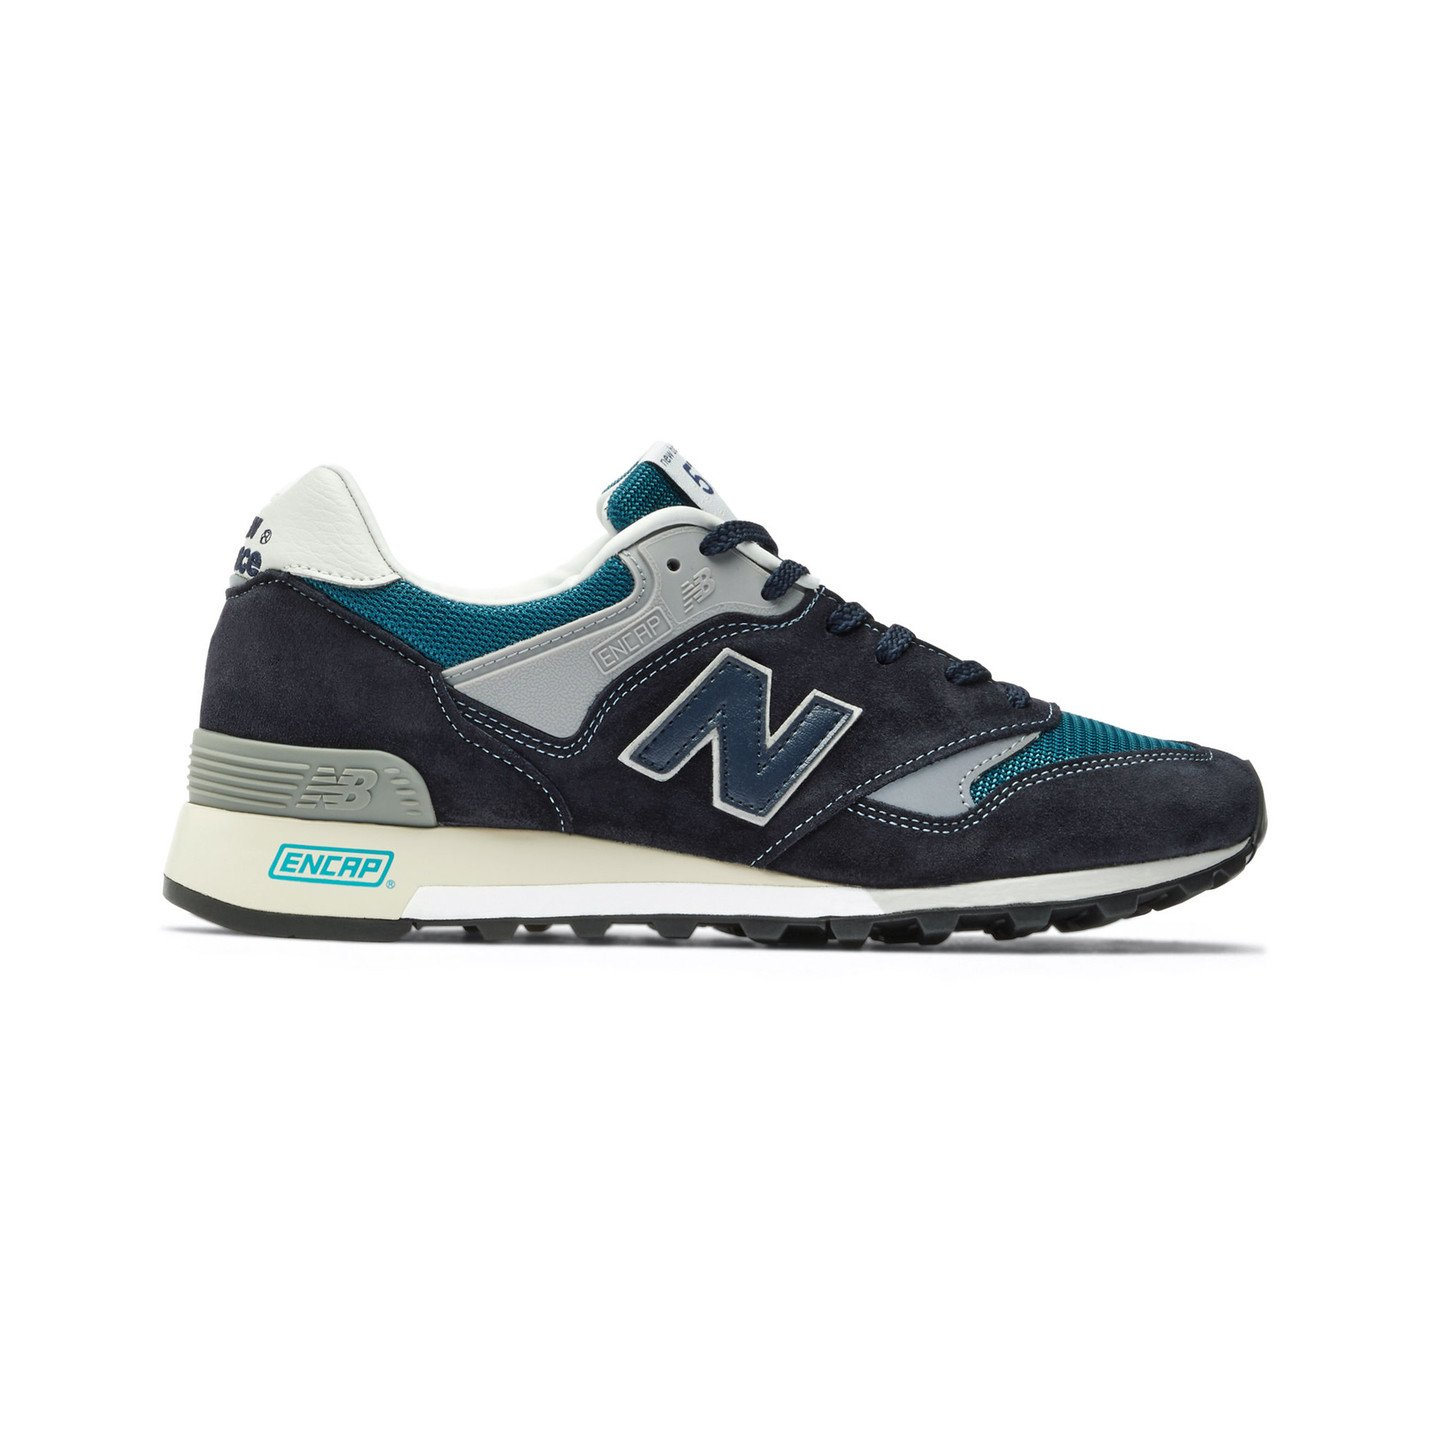 New Balance M577 ORC - Made in England Navy / Grey M577ORC